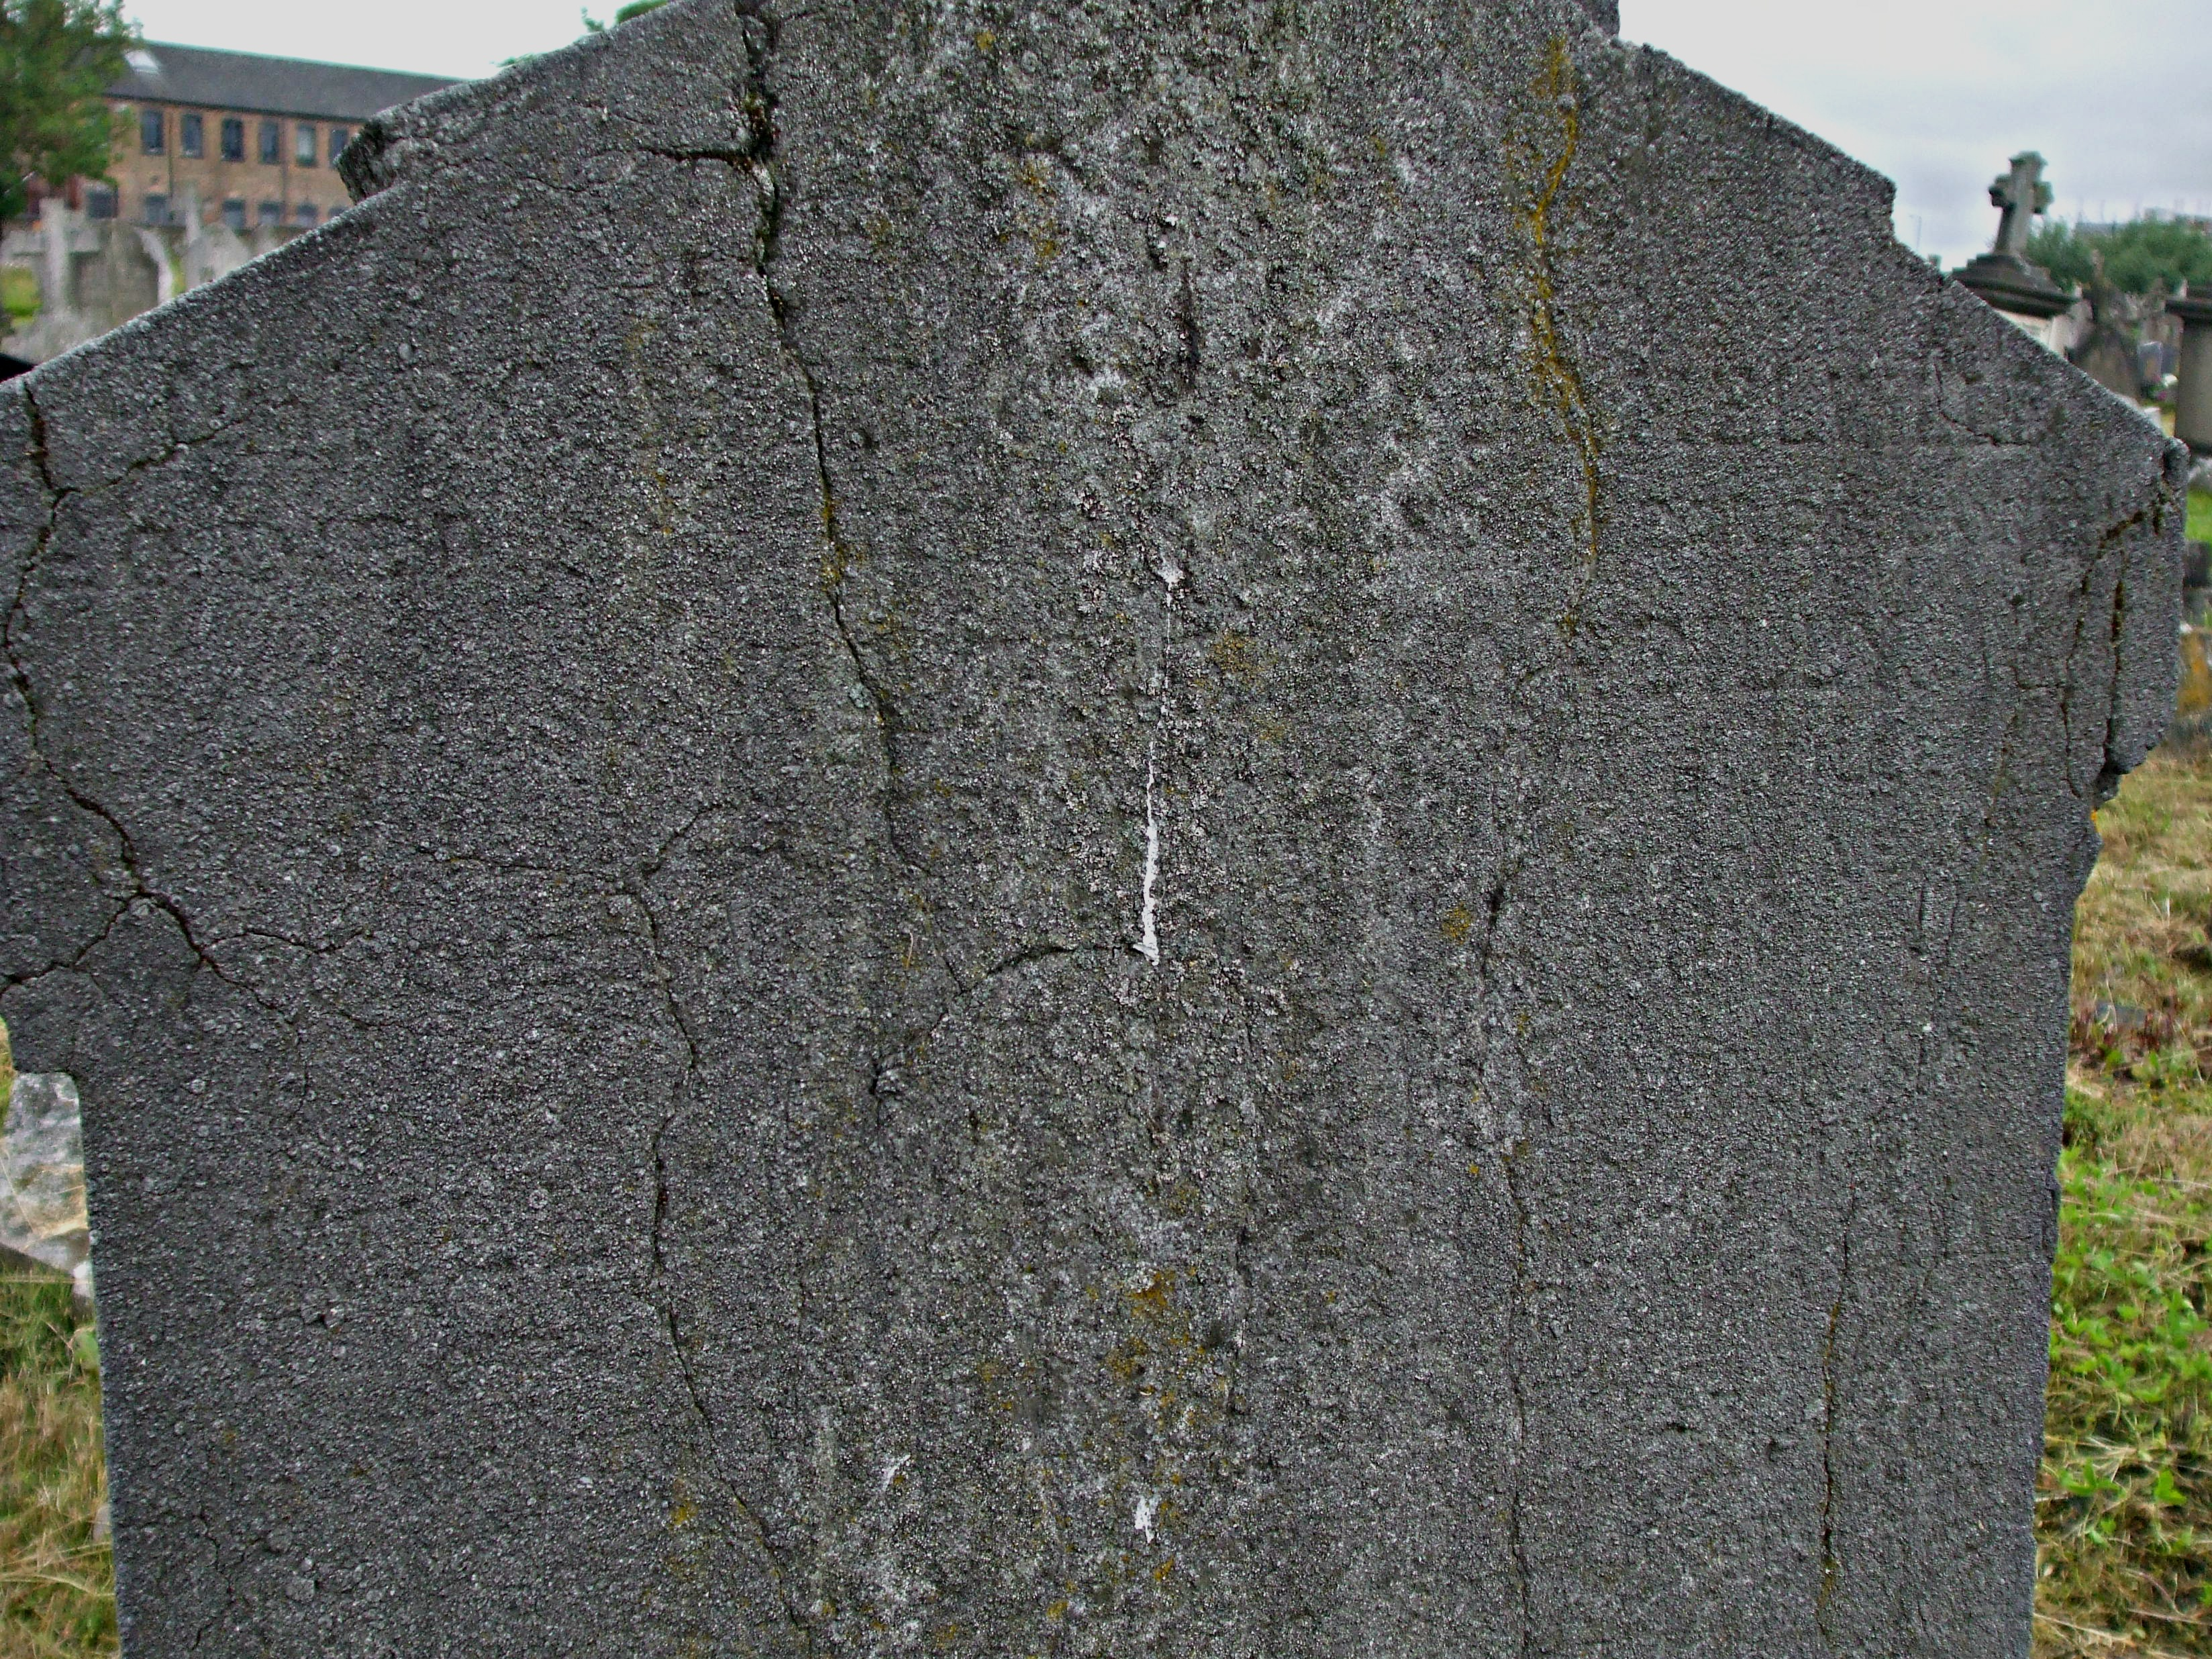 SIR WILLIAM MELVILLE'S GRAVESTONE